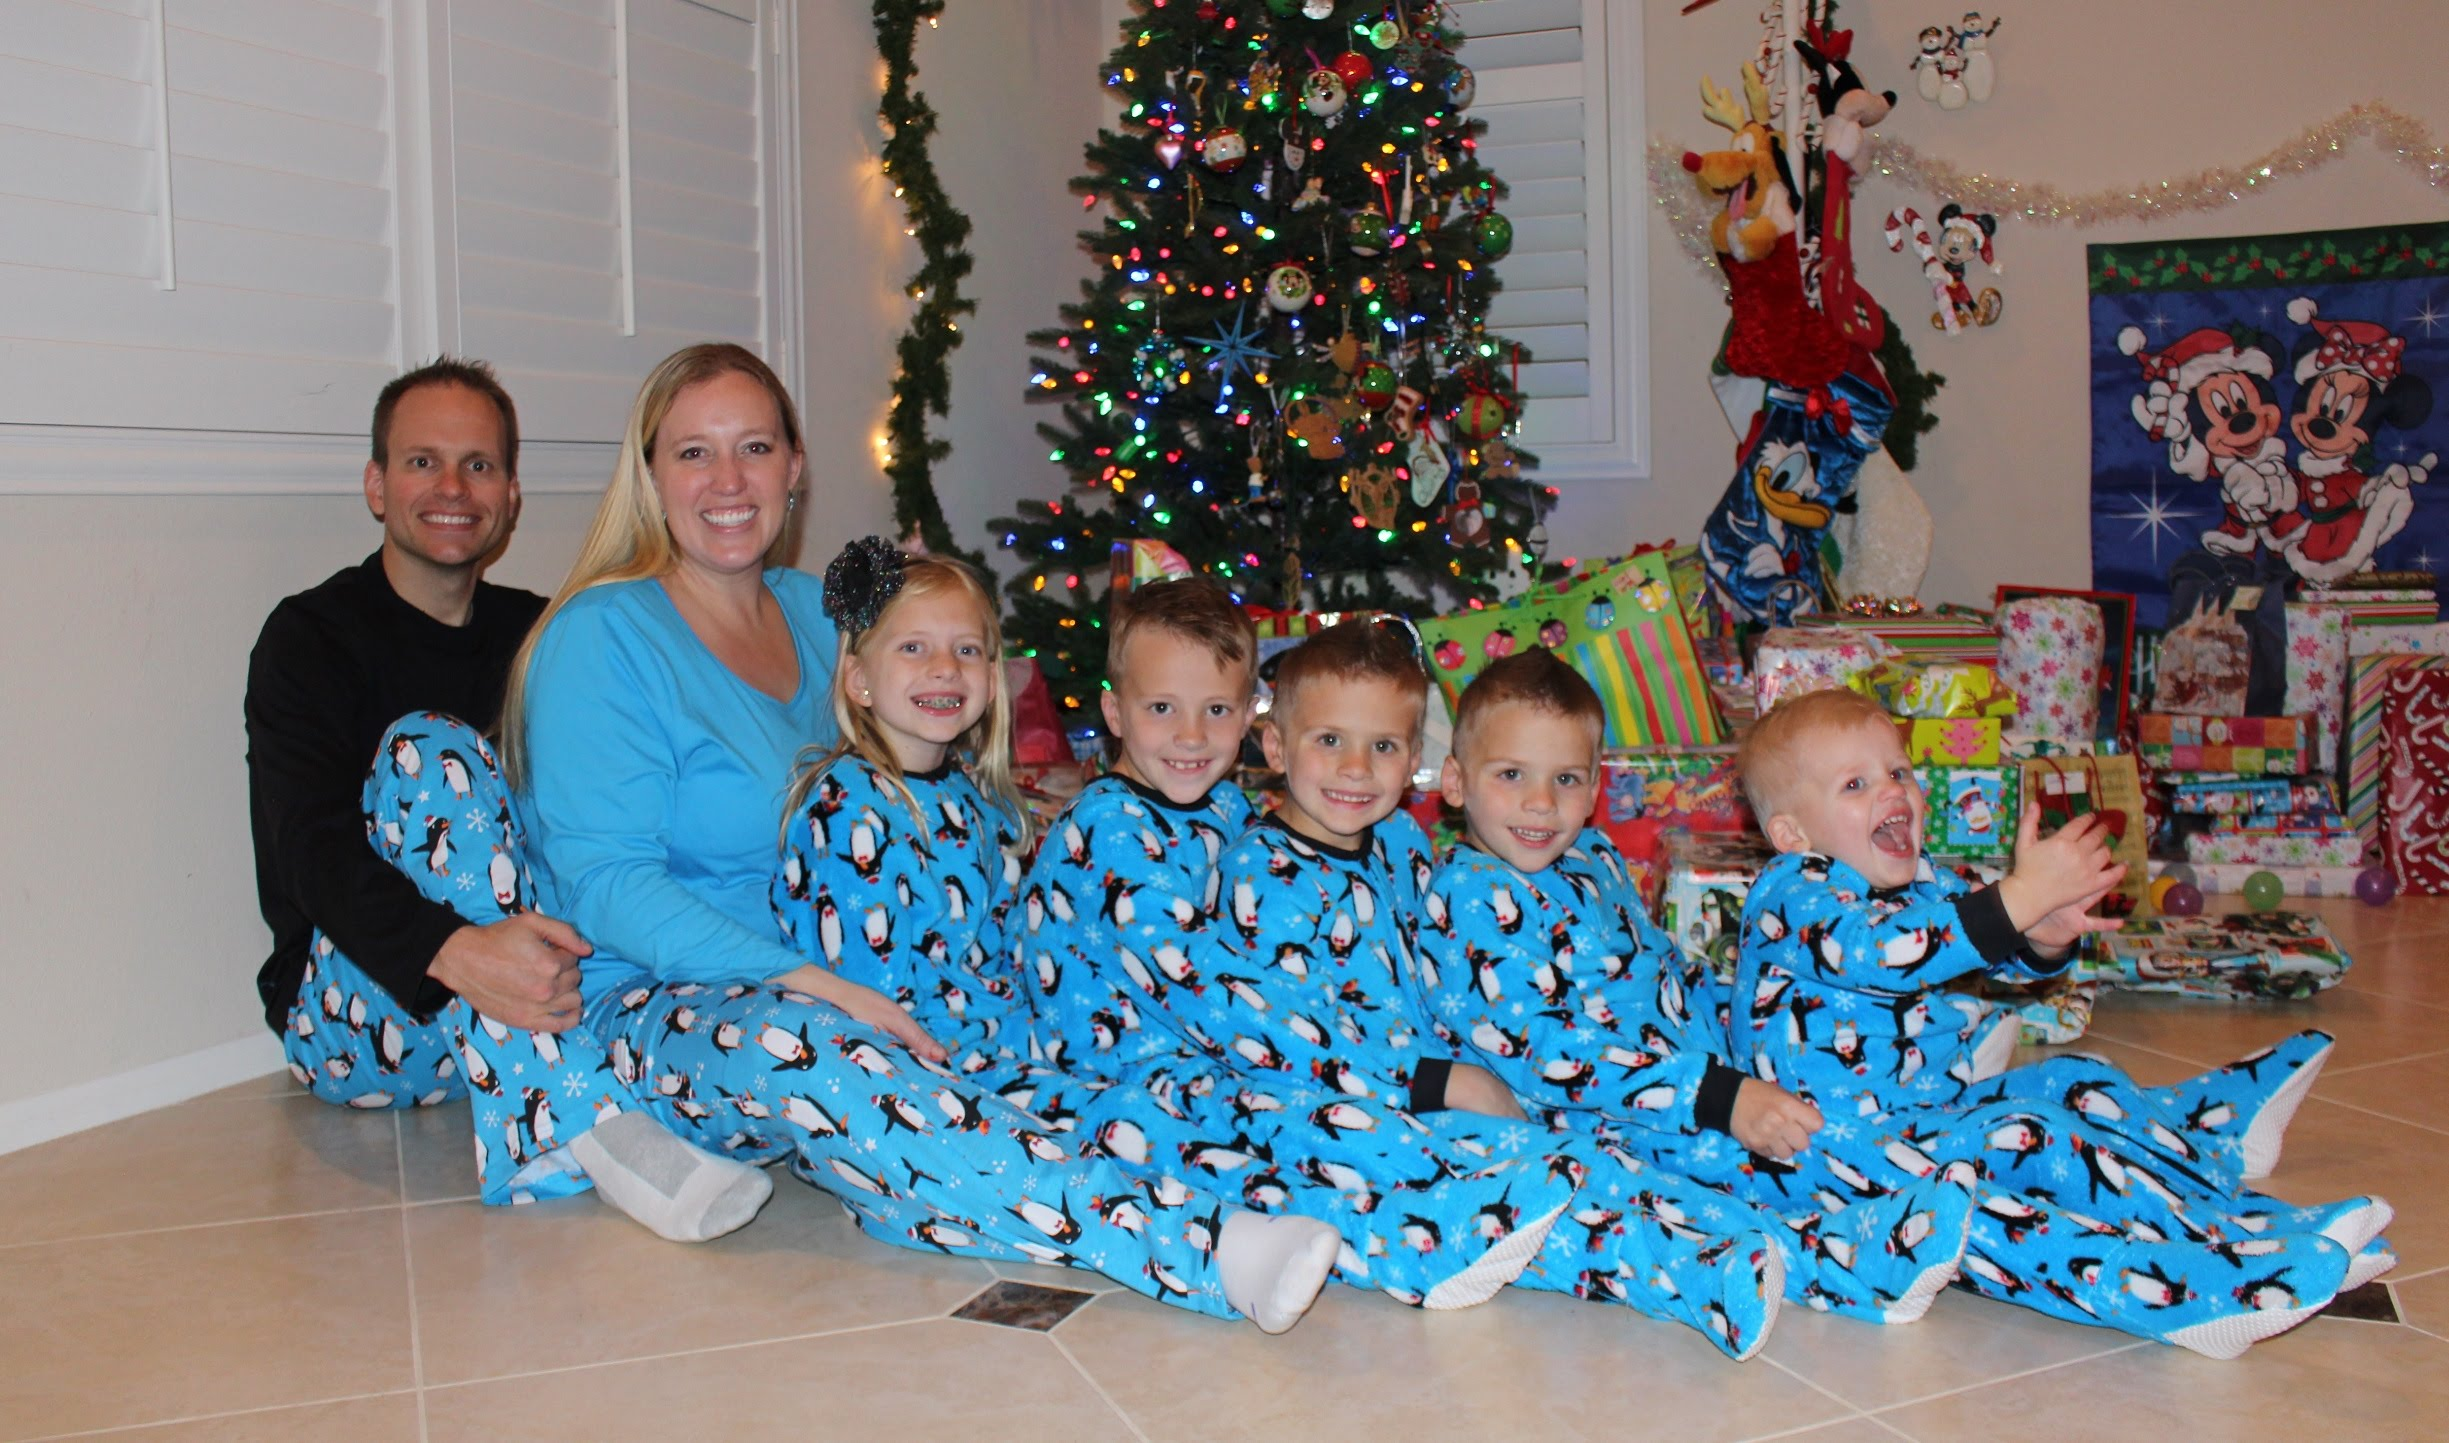 24 Hours With 5 Kids On Christmas Day - YouTube